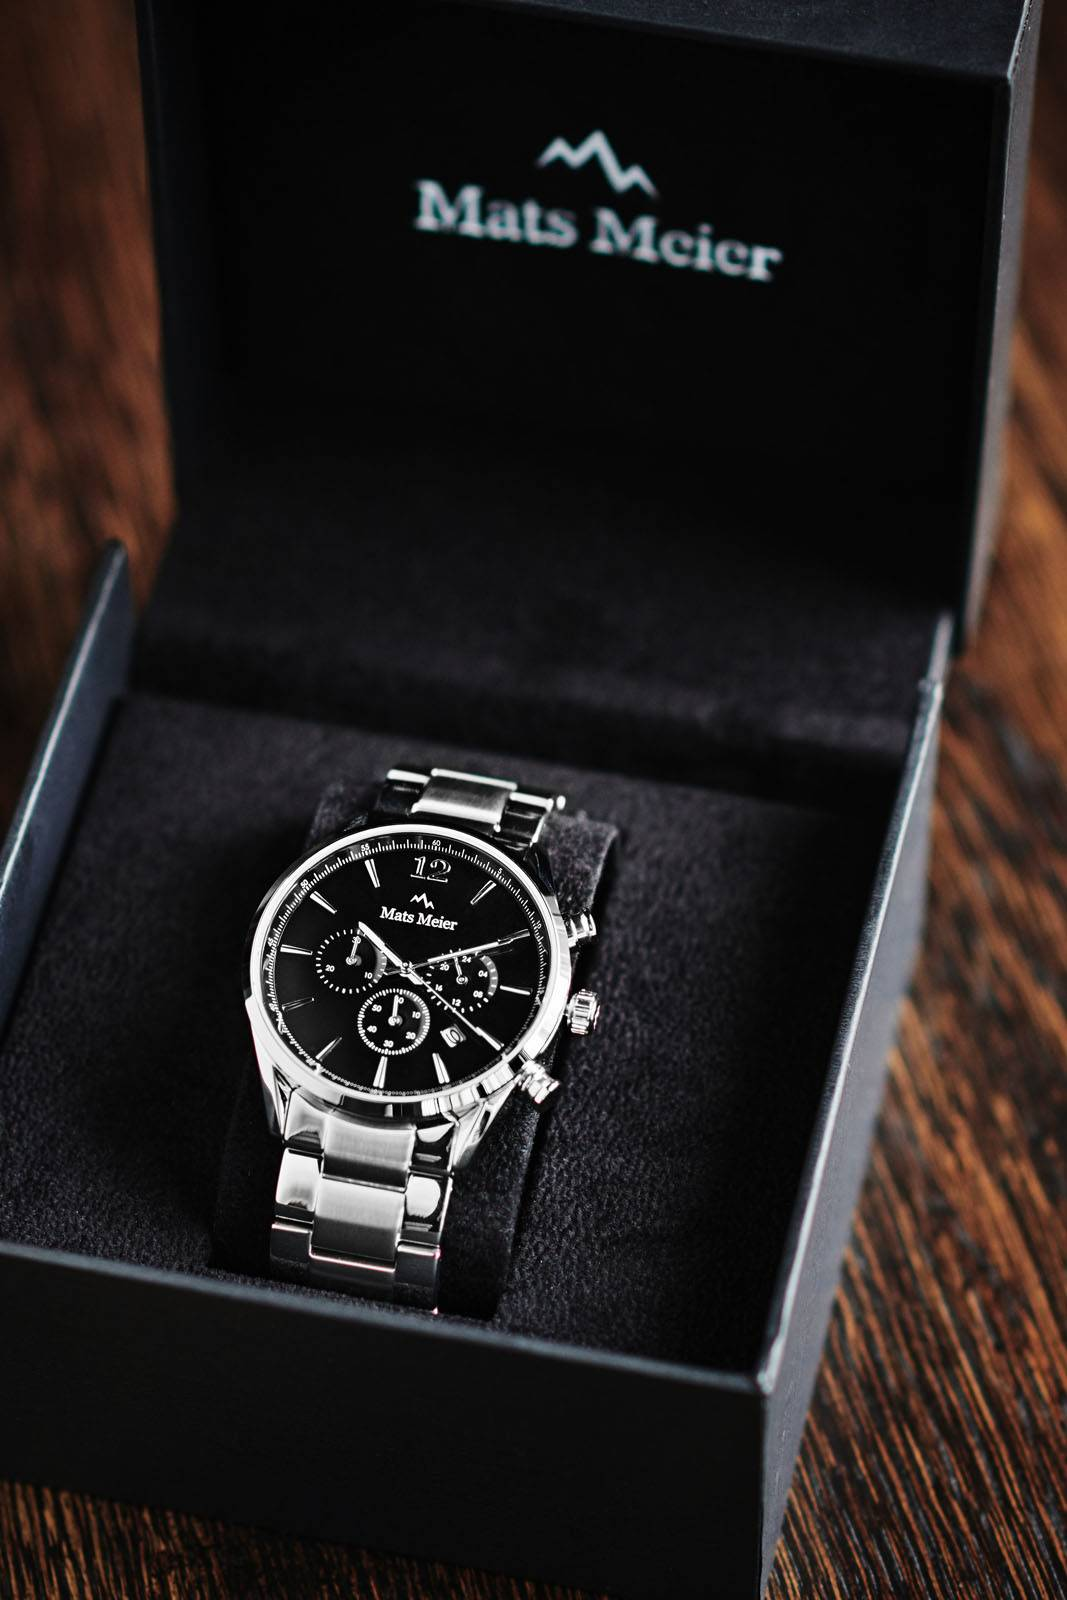 Mats Meier Top Quality Men's Watches - Conquer Yourself